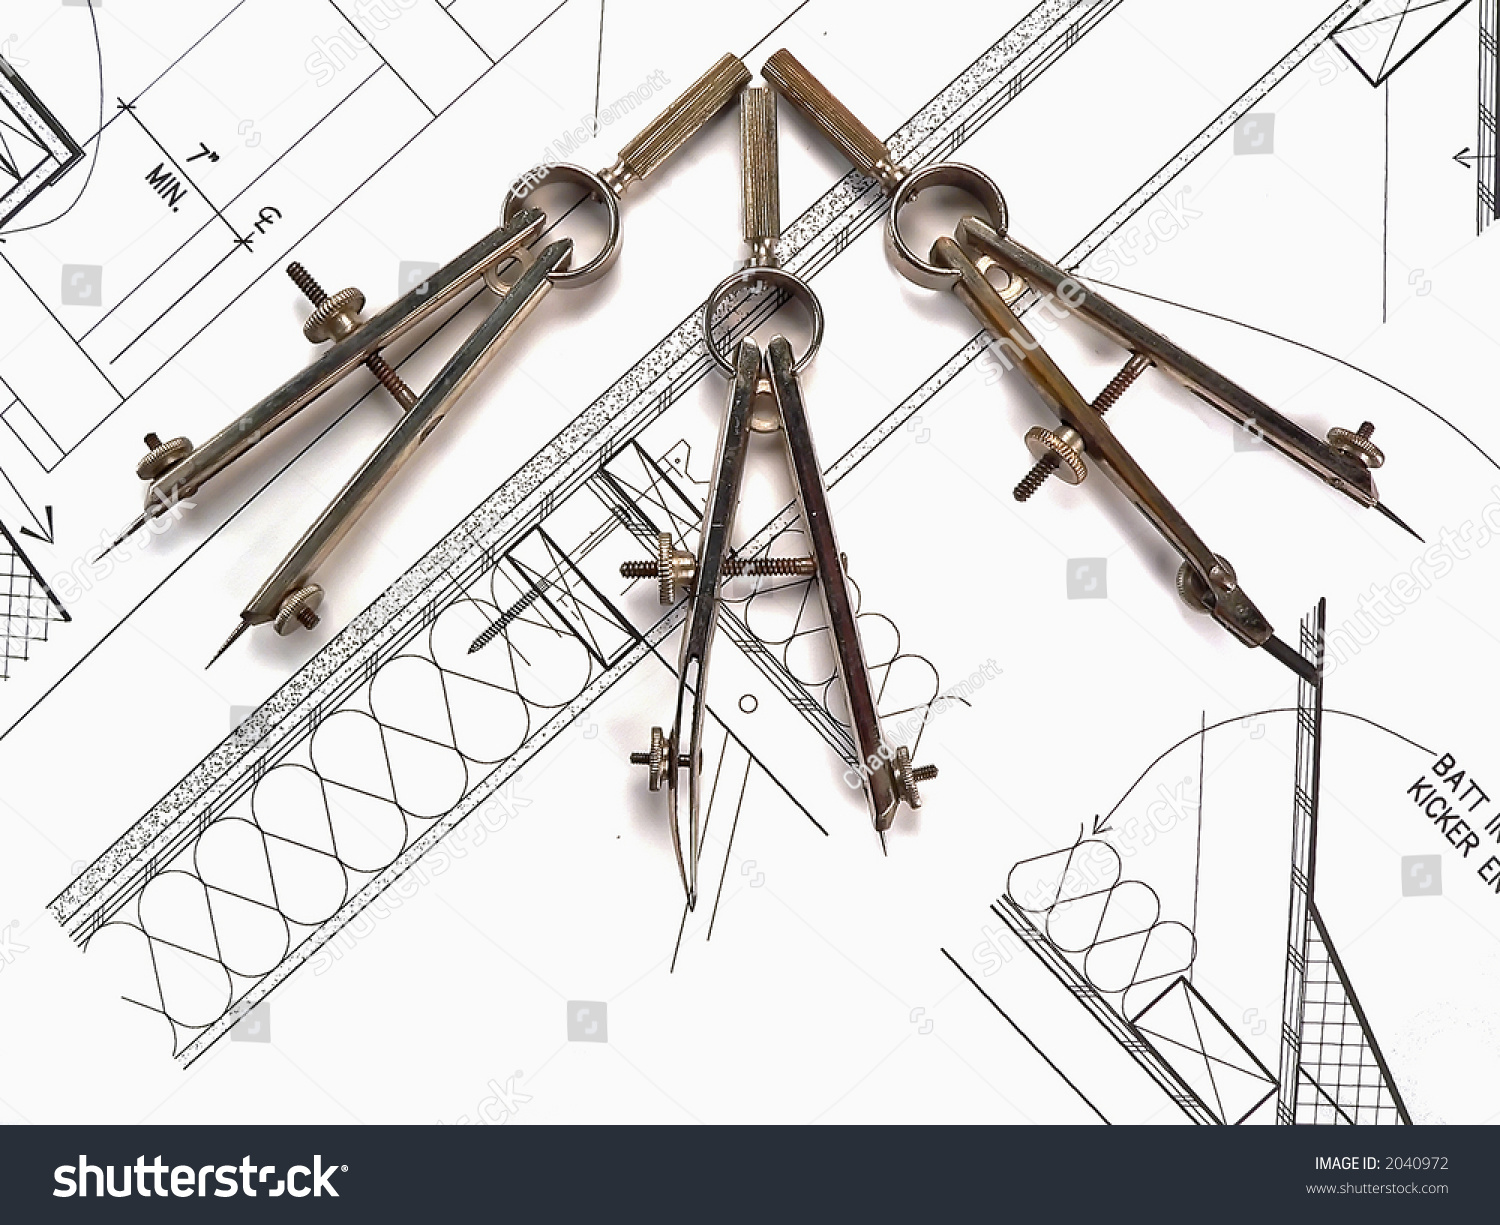 #5E4C3E22398584 Architect'S Tools Of The Trade And His Design Blueprints Stock Photo  Van de bovenste plank Architecture Design Tools 793 beeld 15001225793 Inspiratie